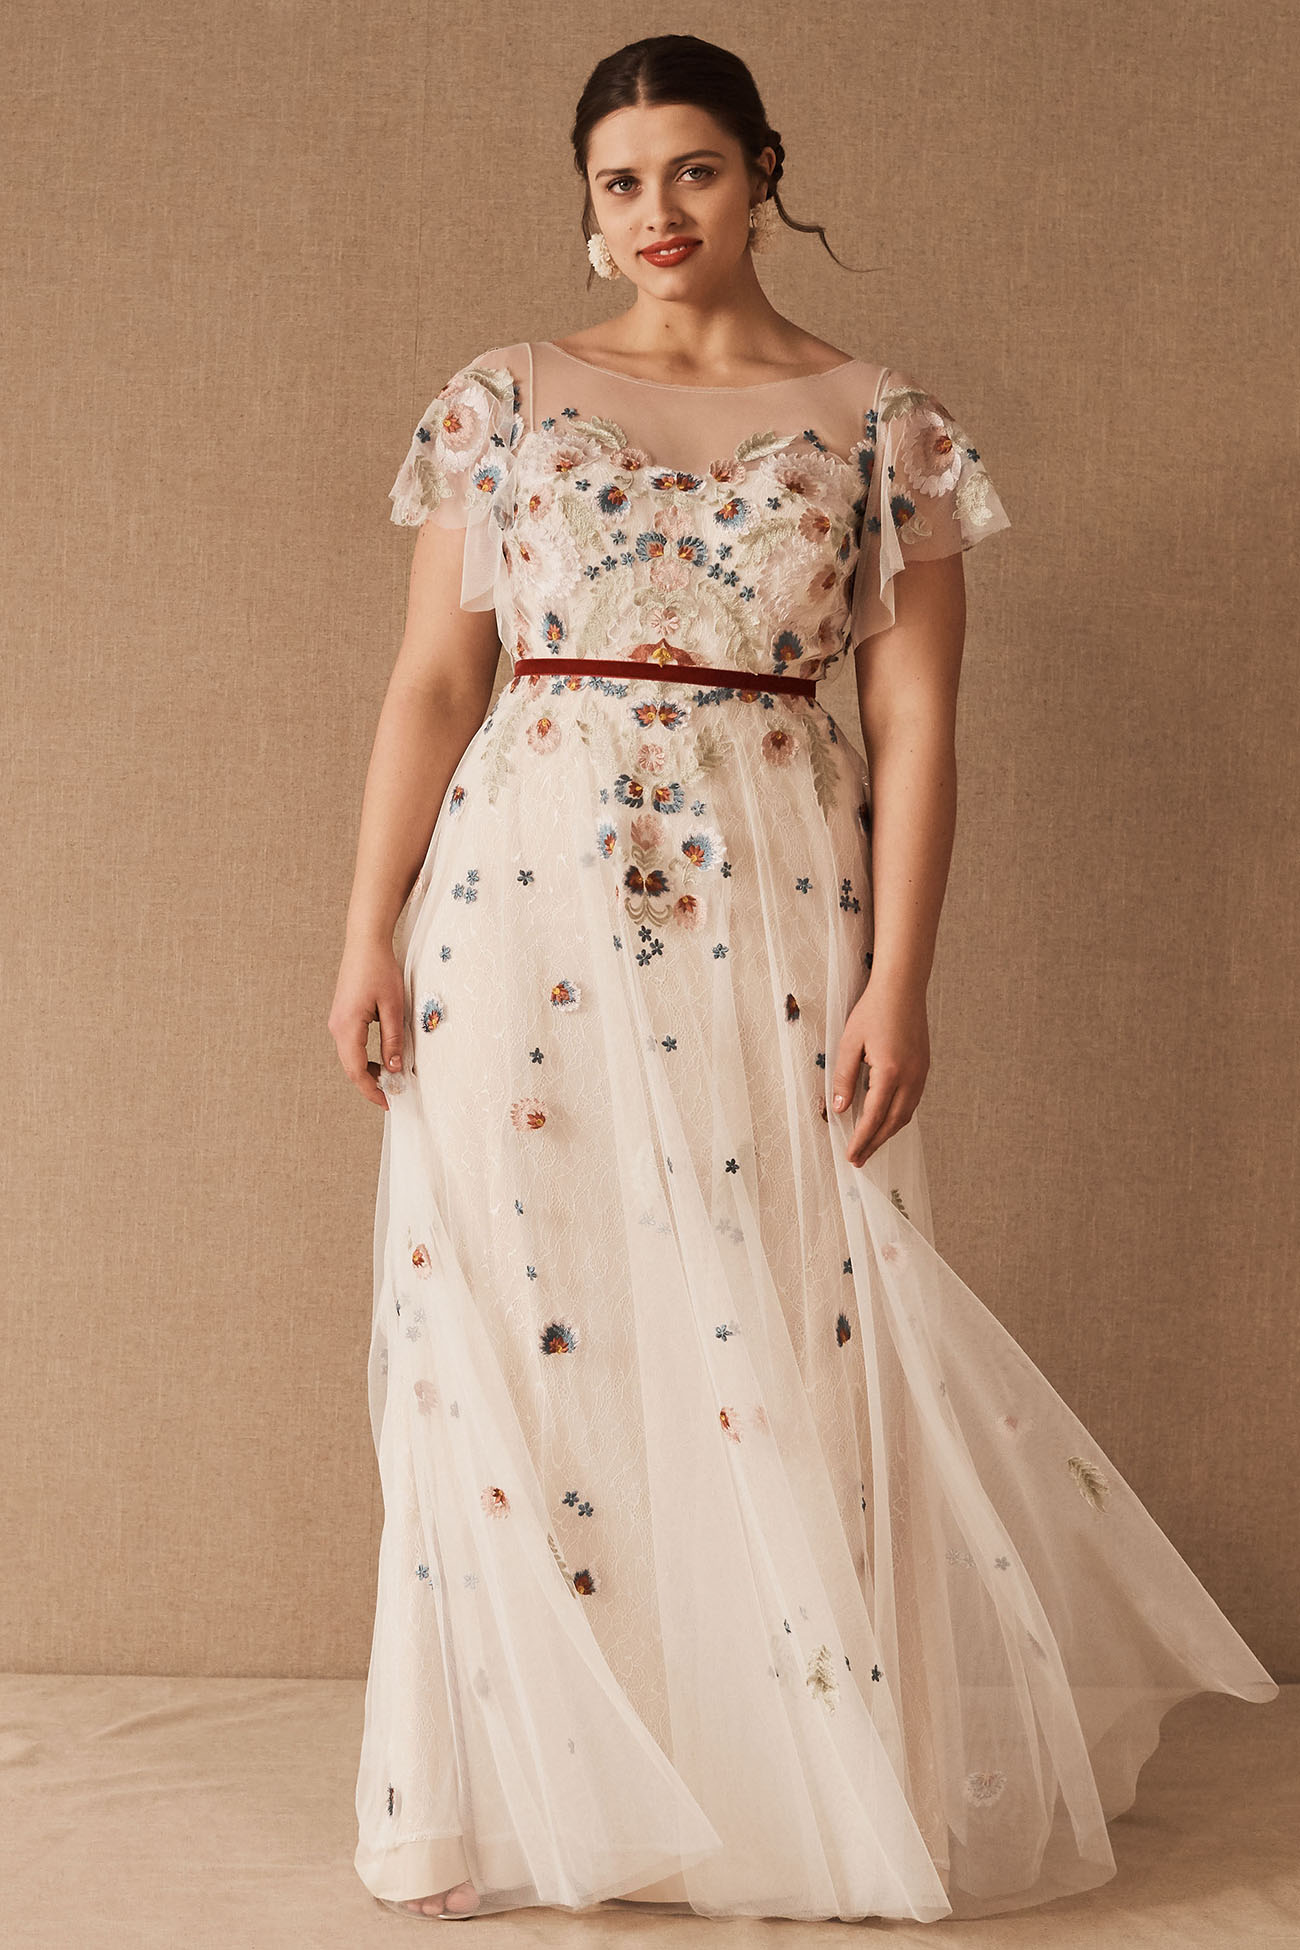 Heartleaf Gown for BHLDN